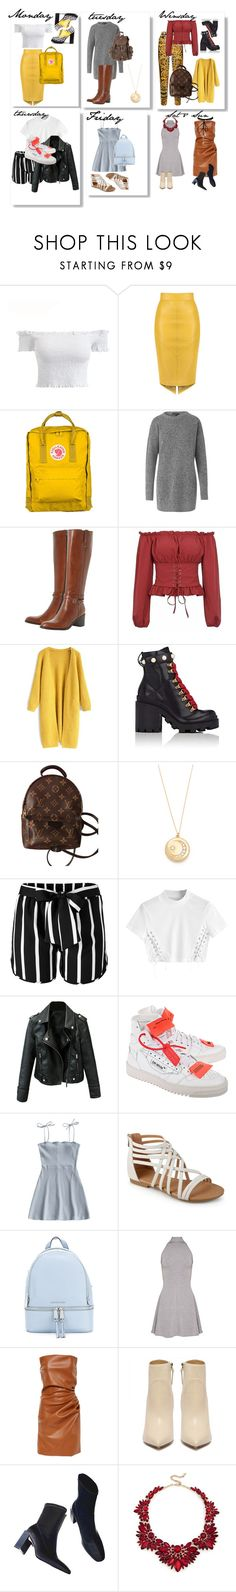 """""""OOED (outfit of each day)"""" by nikolayva ❤ liked on Polyvore featuring Fjällräven, Dune Black, Chicwish, Gucci, Louis Vuitton, Sasha Samuel, Venus, Off-White, MICHAEL Michael Kors and Sole Society"""